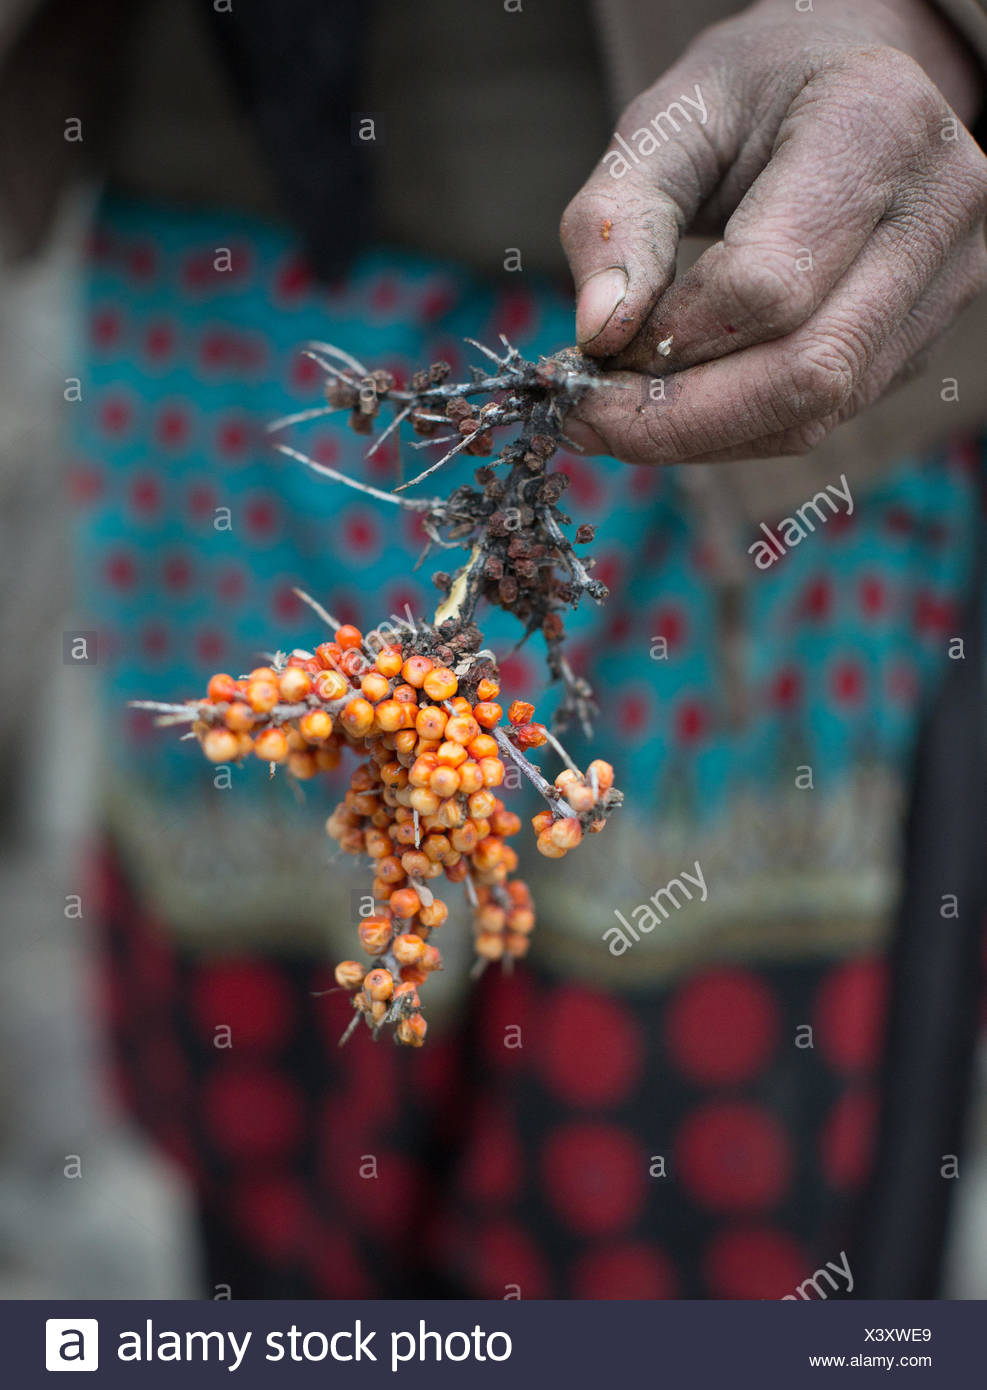 Picking sea buckthorn berries for their anti cancer properties. - Stock Image